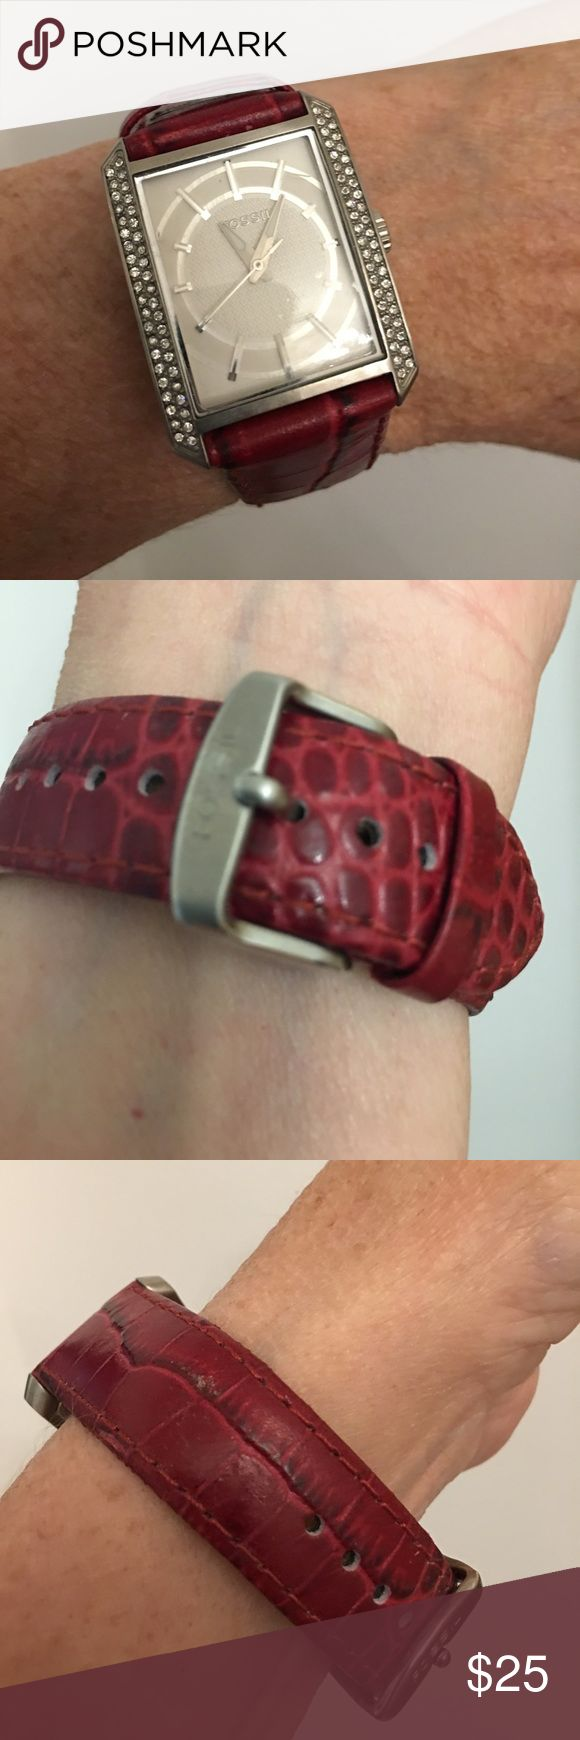 Red Leather Band Fossil watch white face 2nd hand Swarovski Crystals Red Leather Band Fossil watch white face 2nd hand never been worn. No box no tag needs Battery Estate Sale piece Fossil Accessories Watches